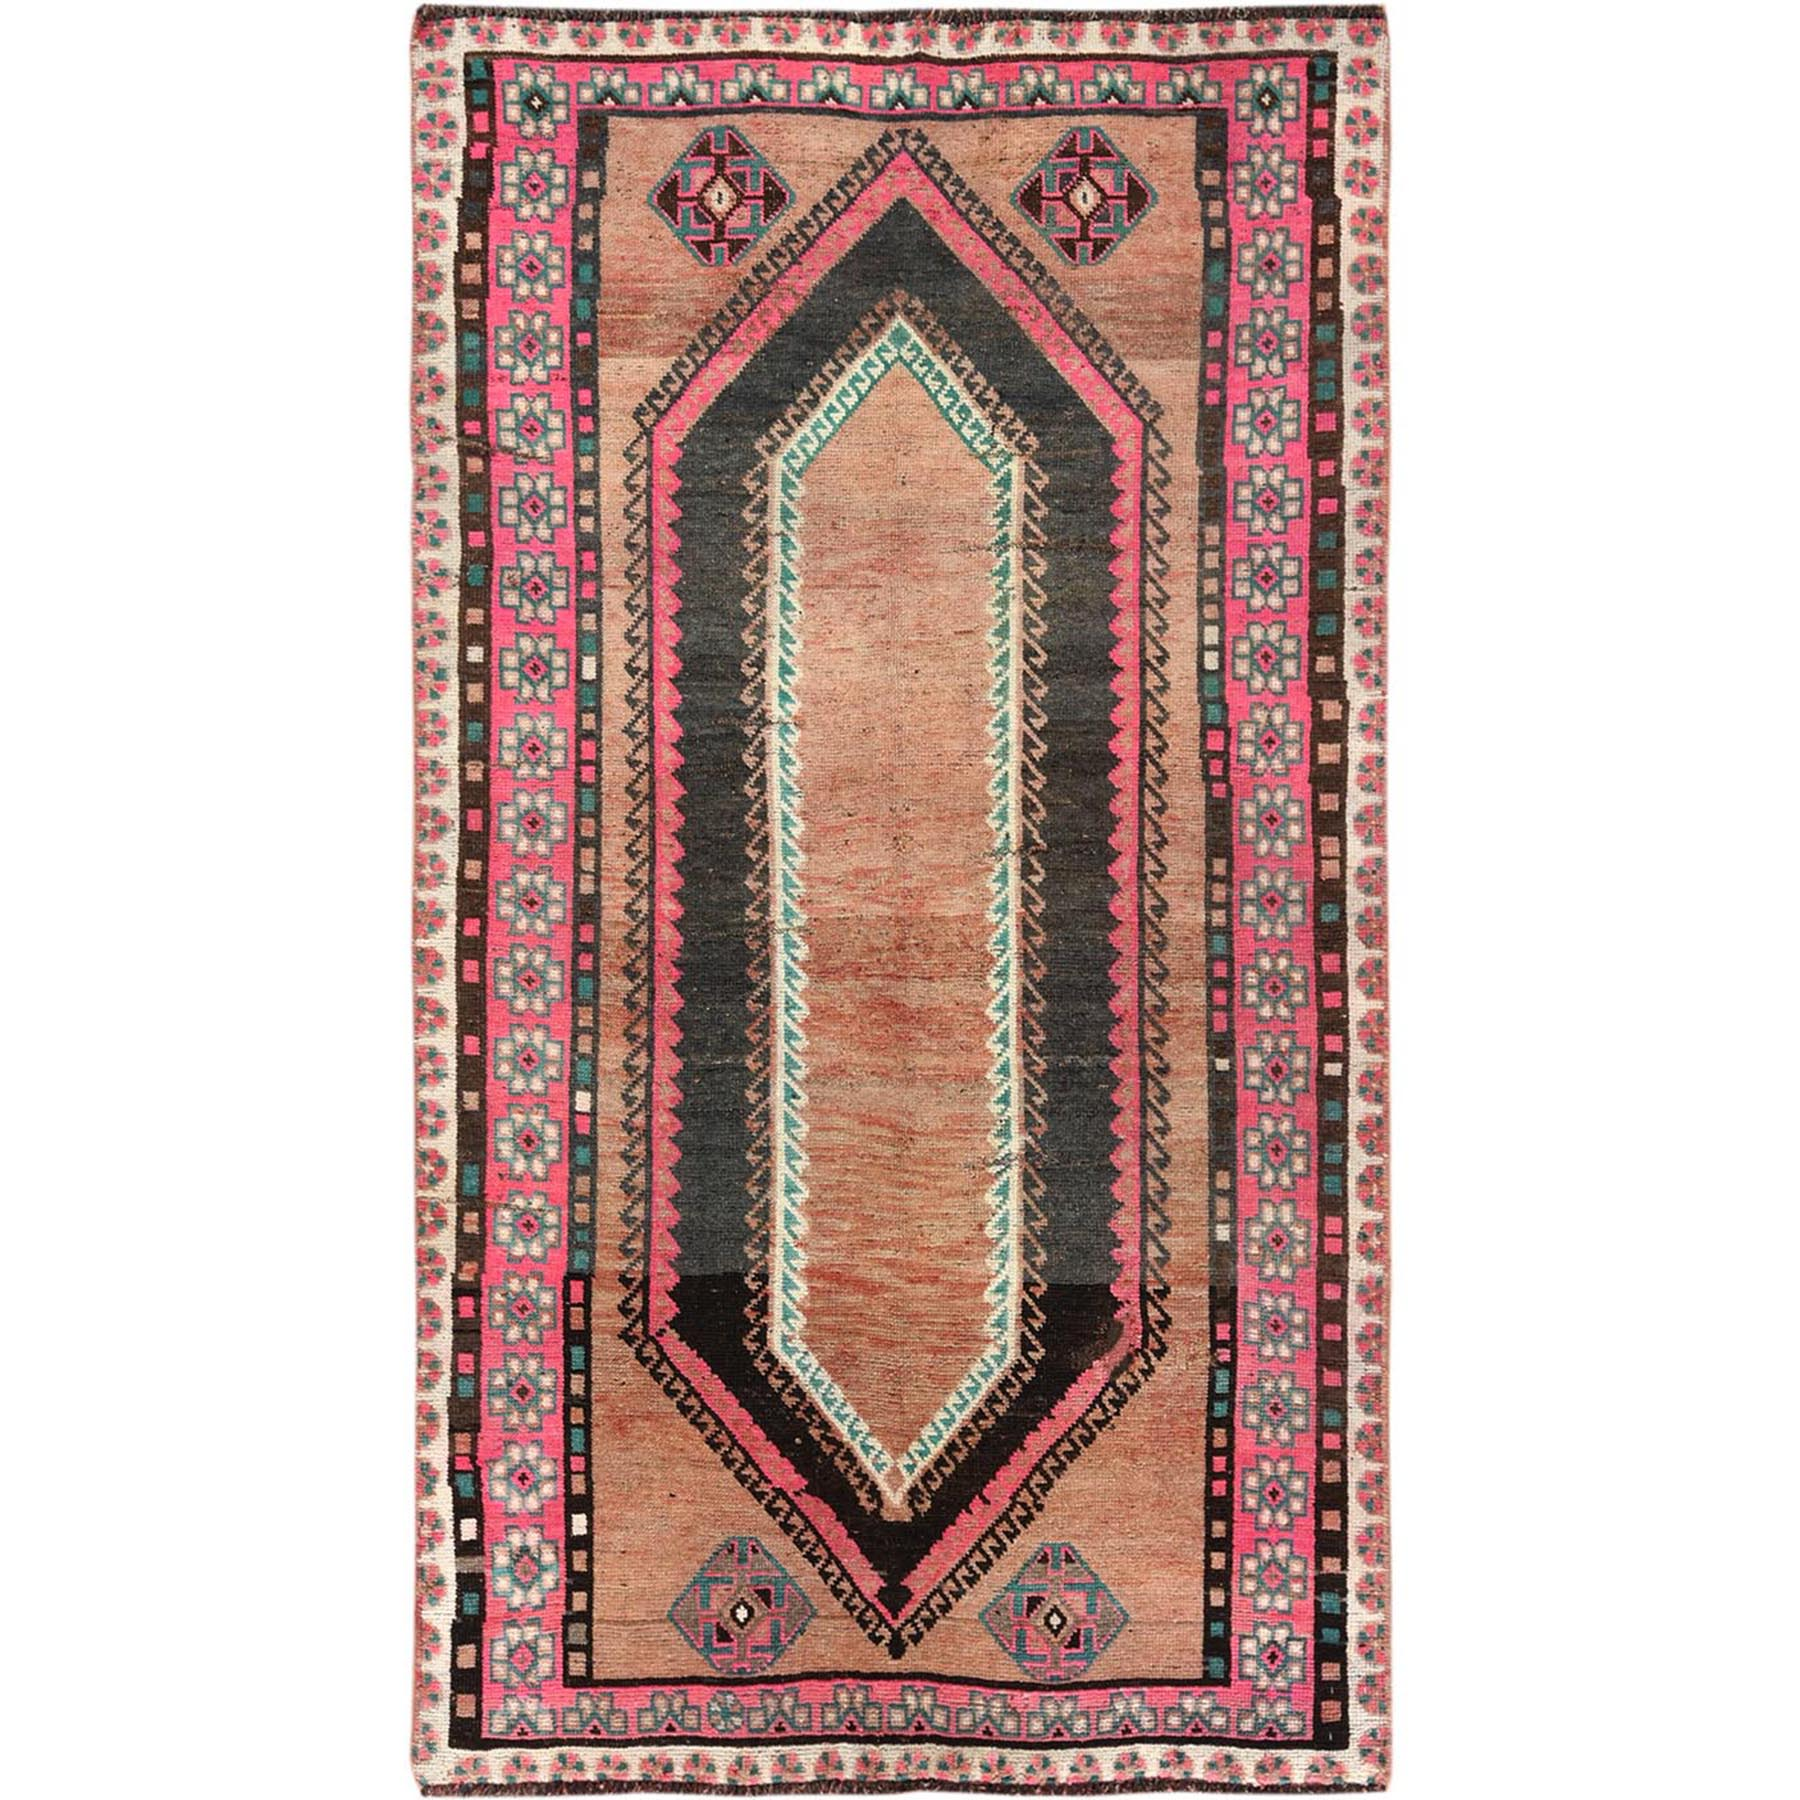 "4'7""x8'6"" Pure Wool Honey Brown Persian Qashqai Hand Knotted Vintage Worn Down Clean Geometric Pattern Oriental Rug"